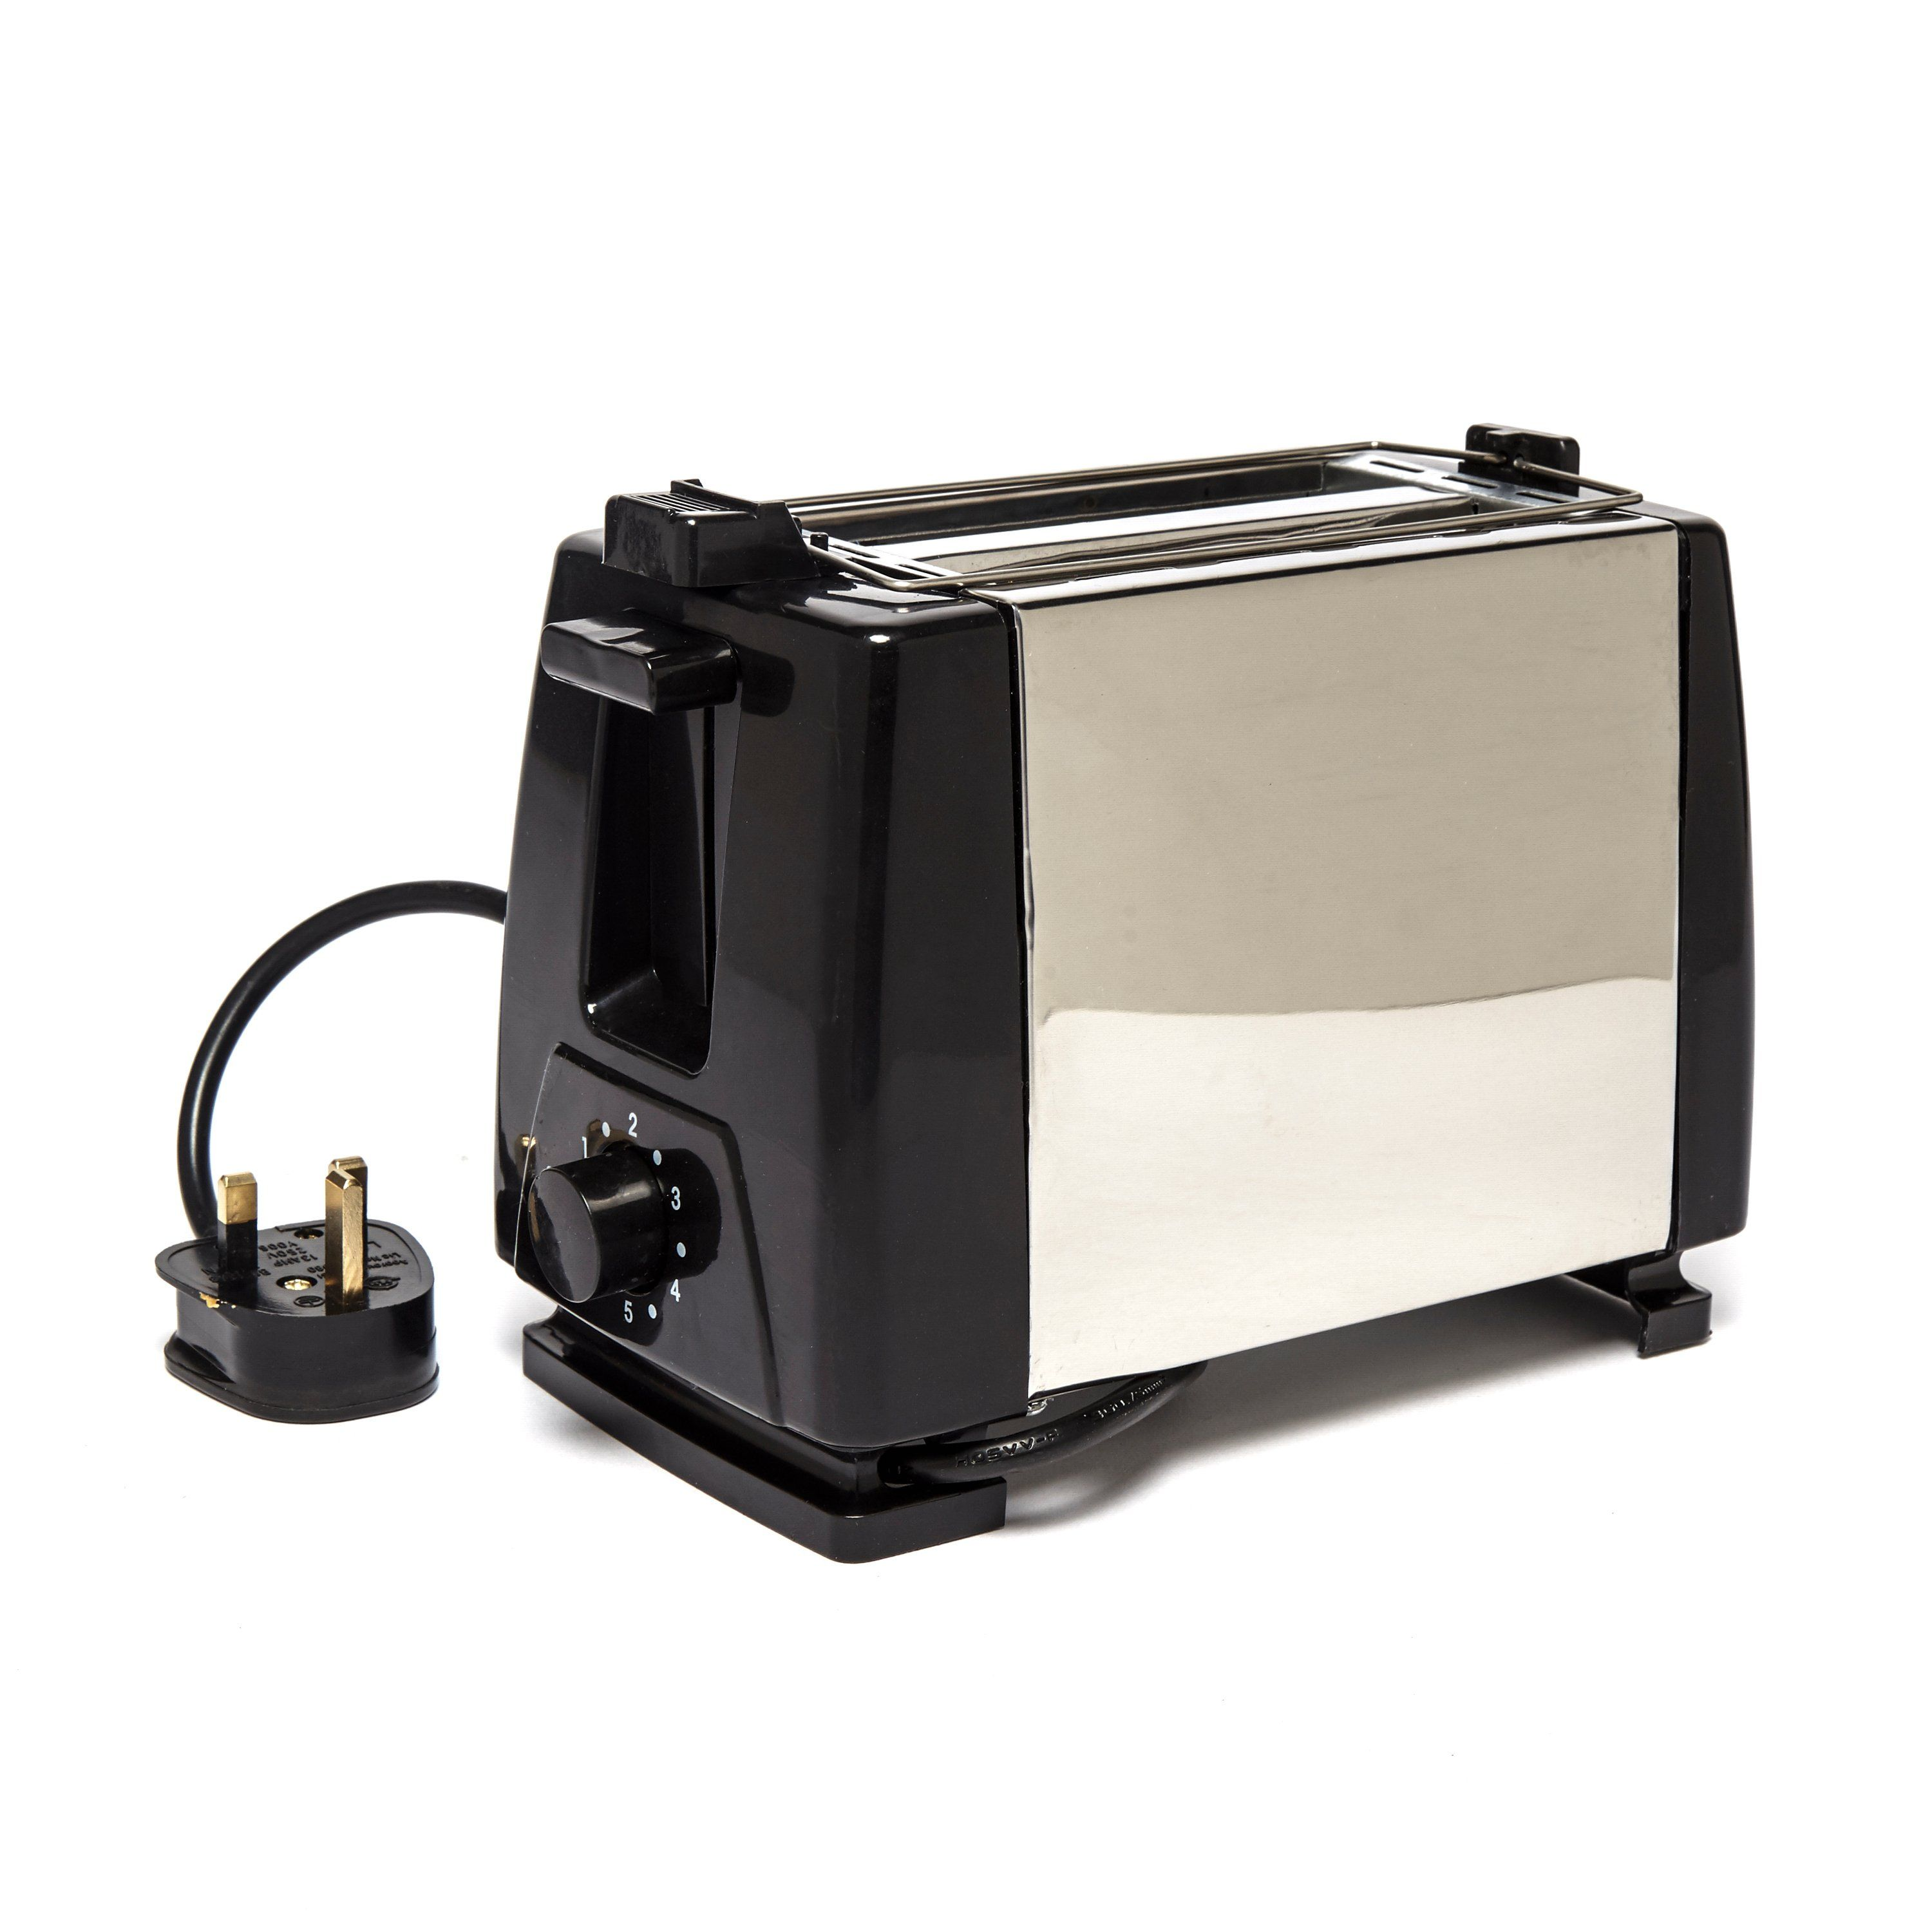 QUEST Stainless Steel Mini Toaster Oven 650W